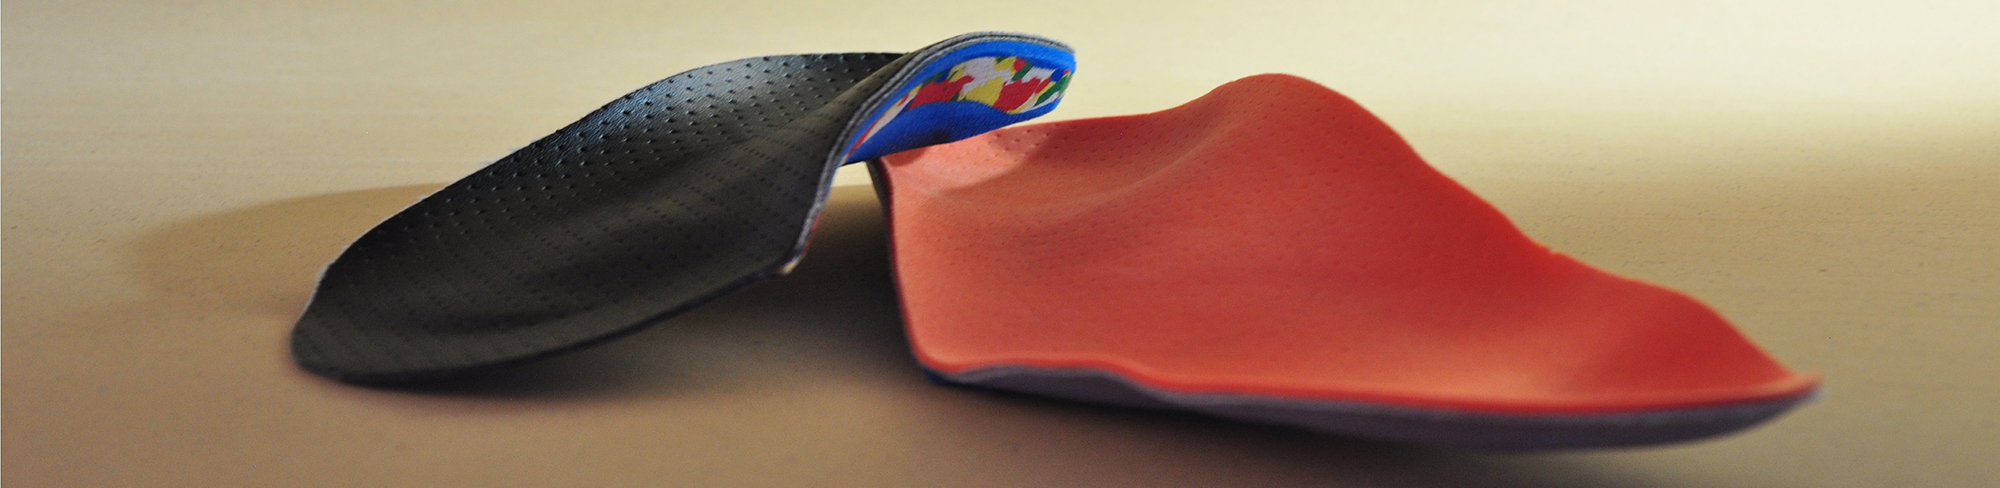 Orthotics made while you wait